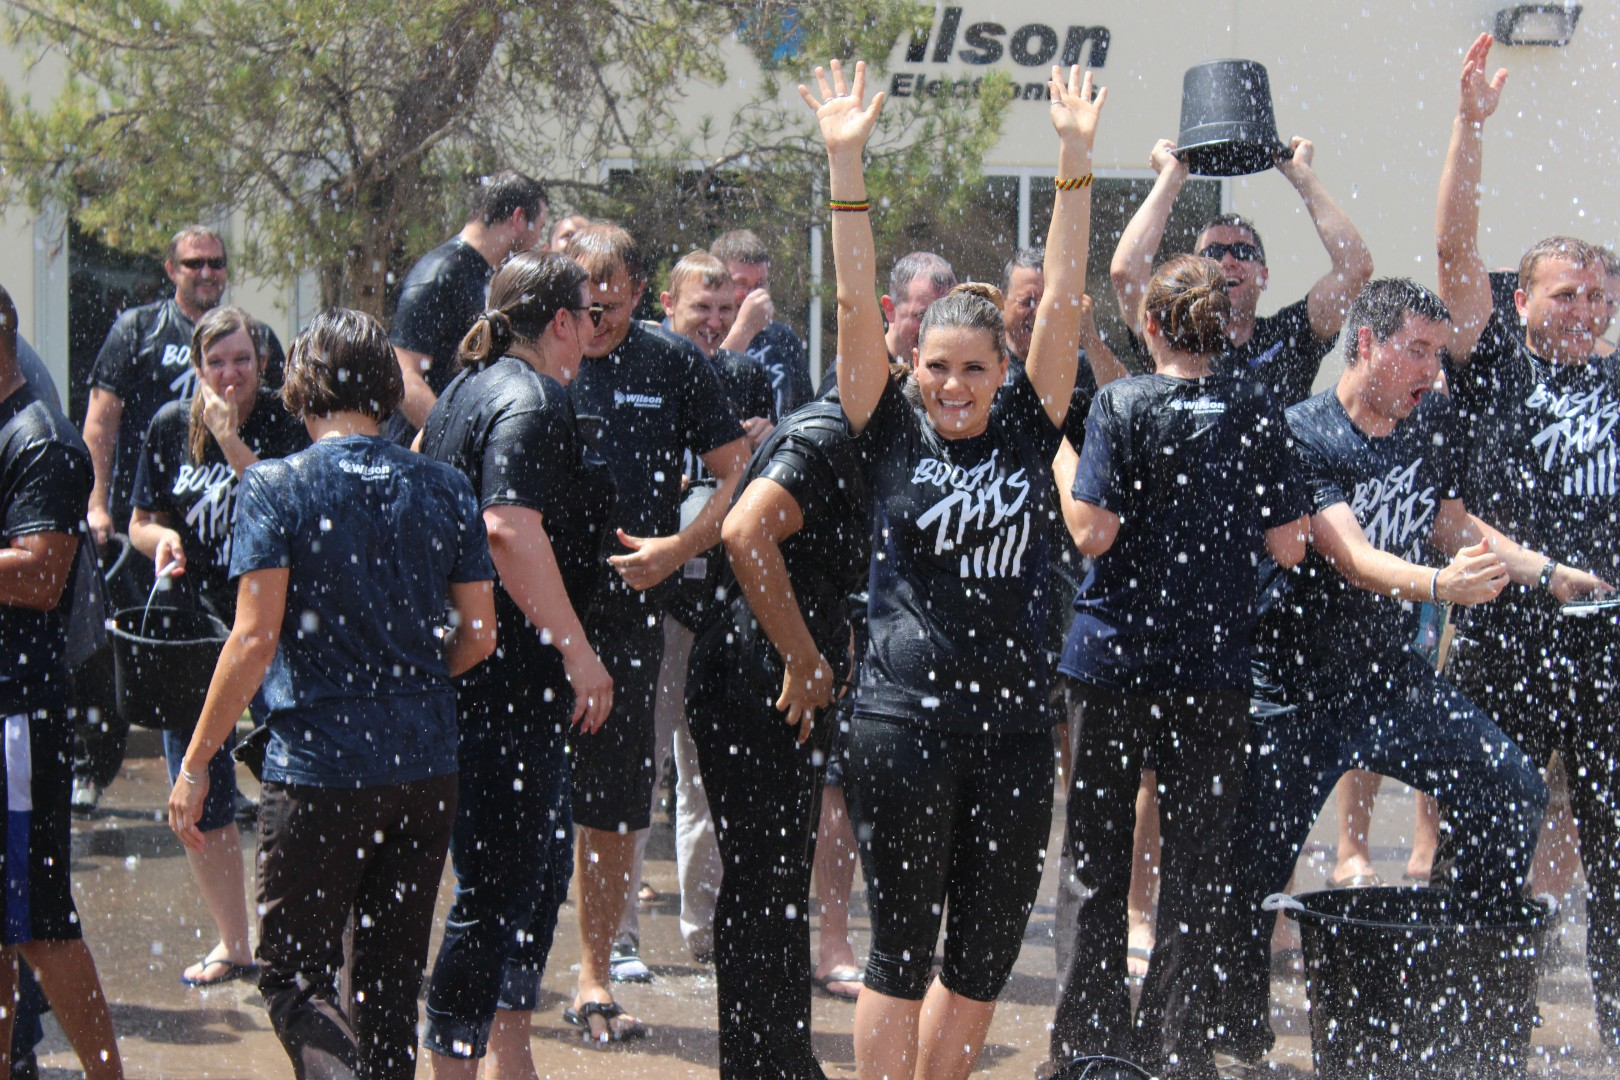 Staff members of Wilson Electronics laugh and scatter as rain from the St. George Fire Department fire truck rains down on them in St. George on Aug. 21, 2014 | Photo by Devan Chavez, St. George News